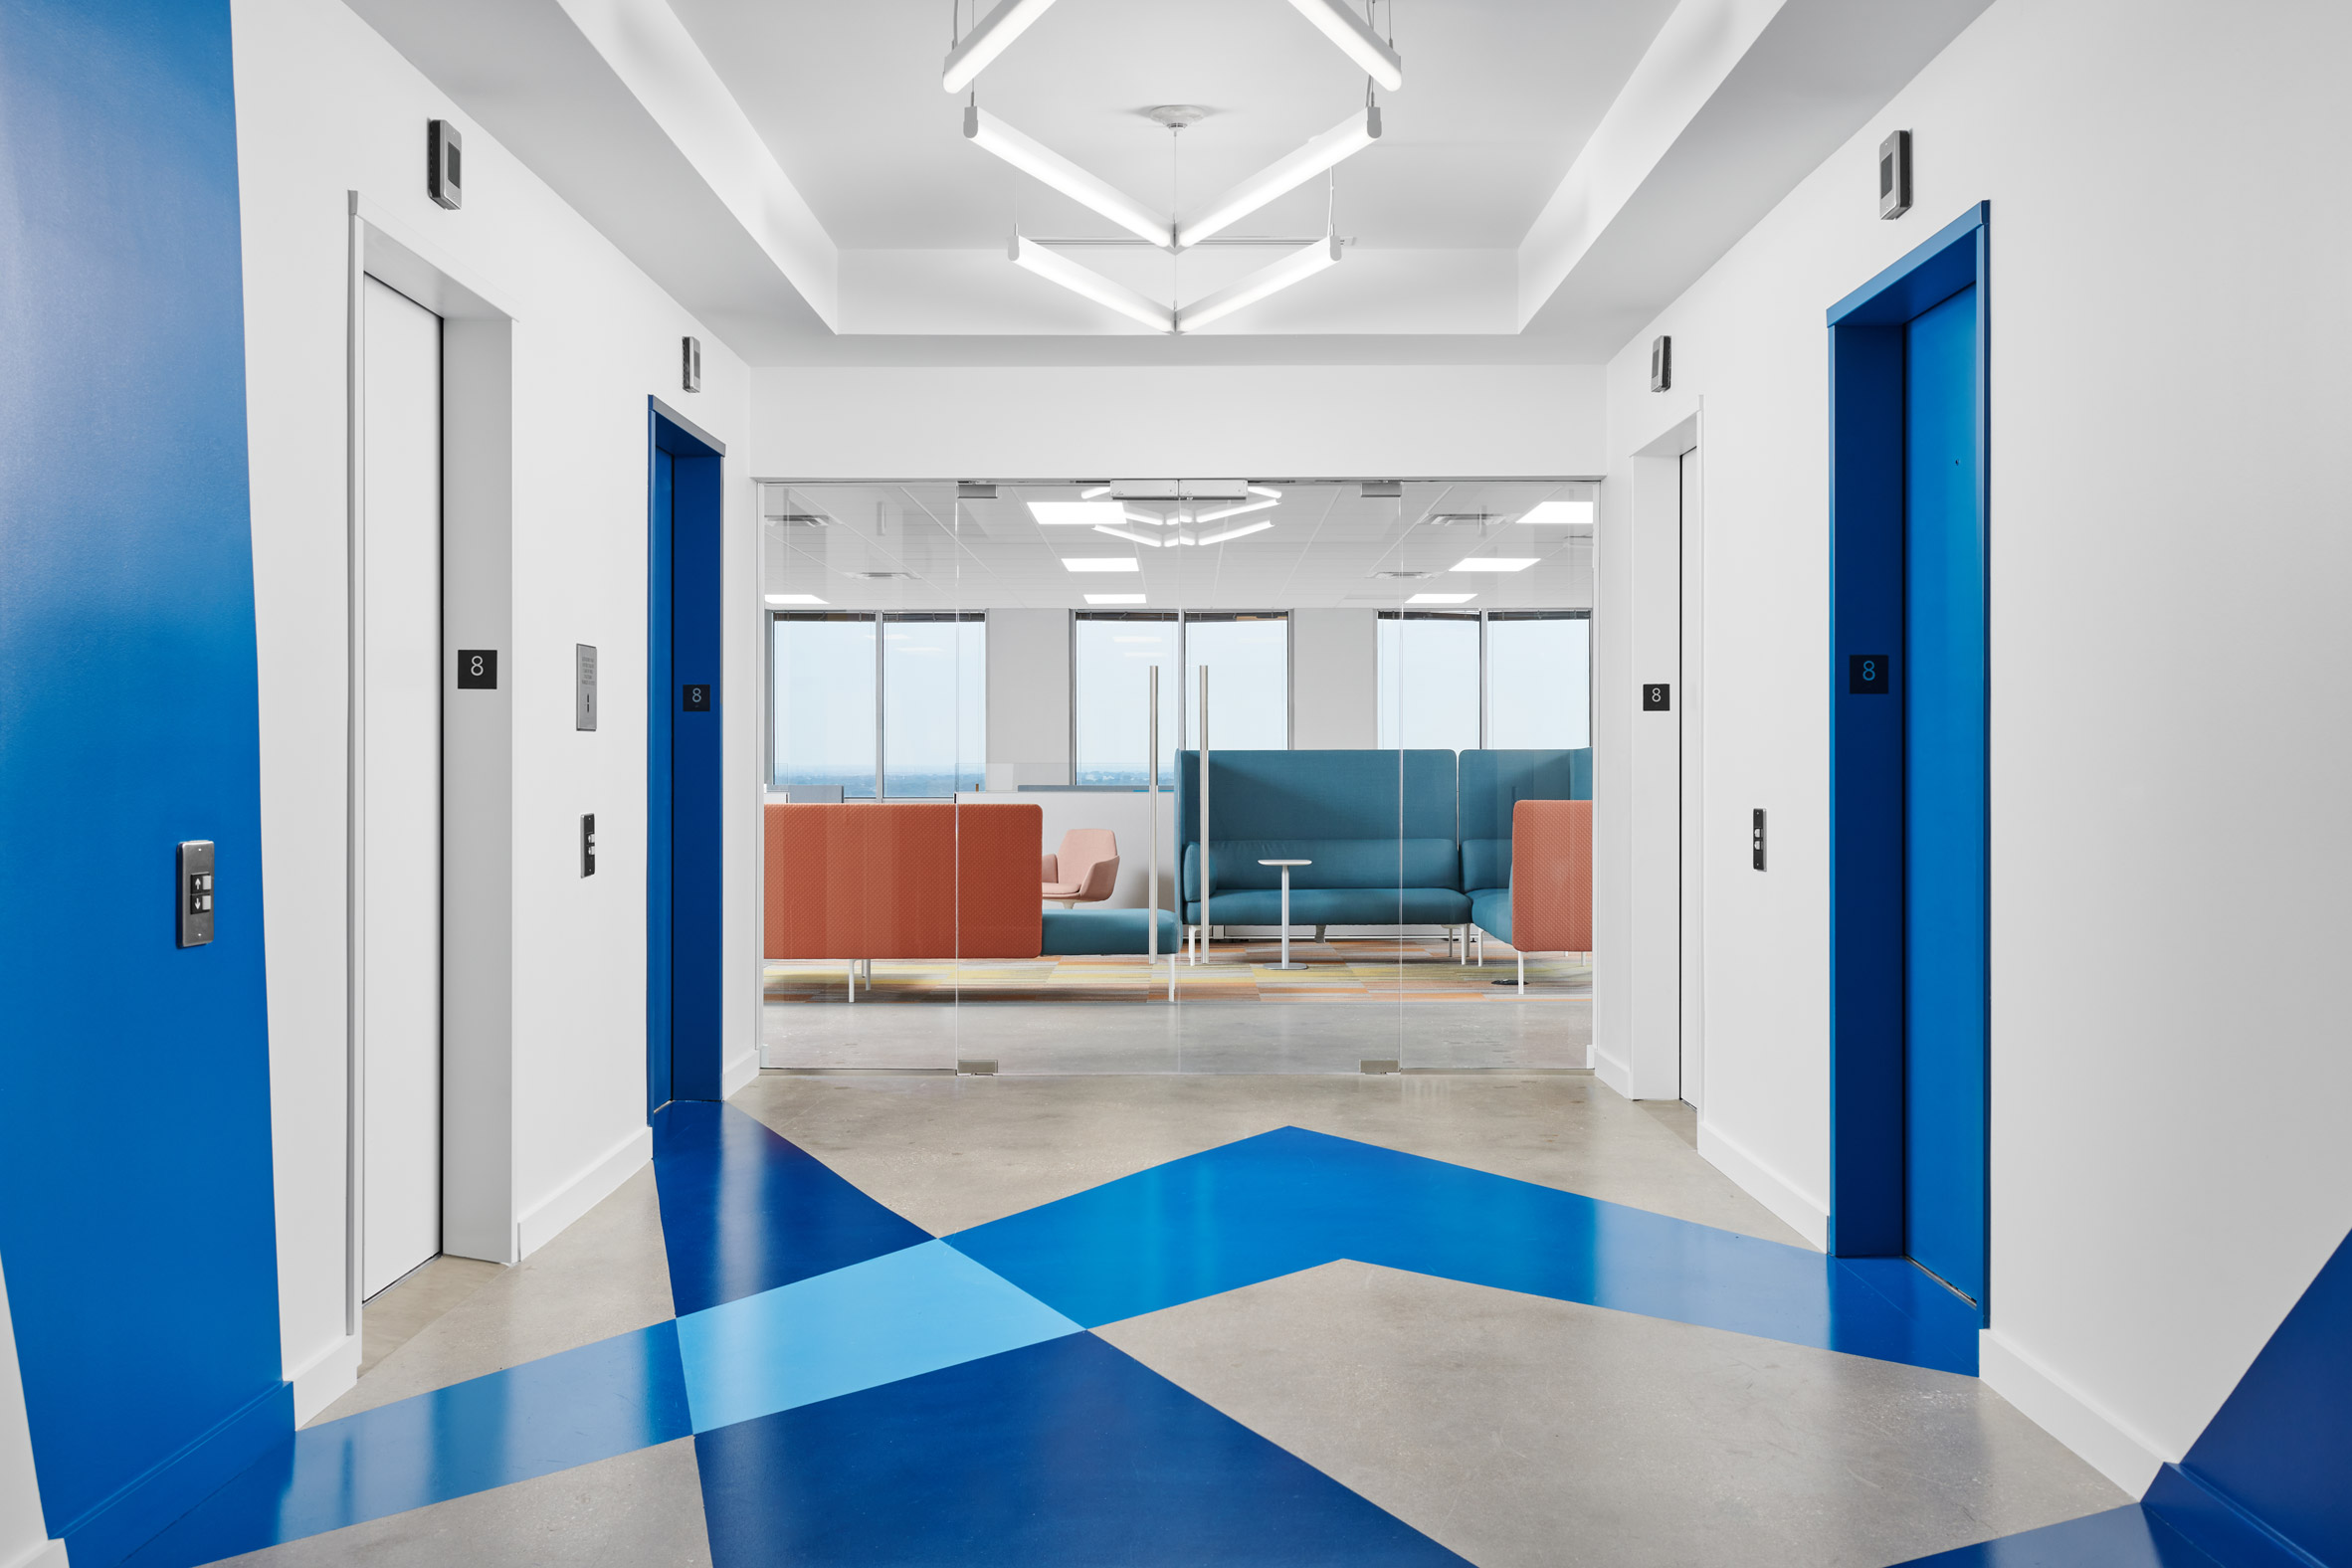 Perkins&Will used Signify's brand colours in the space